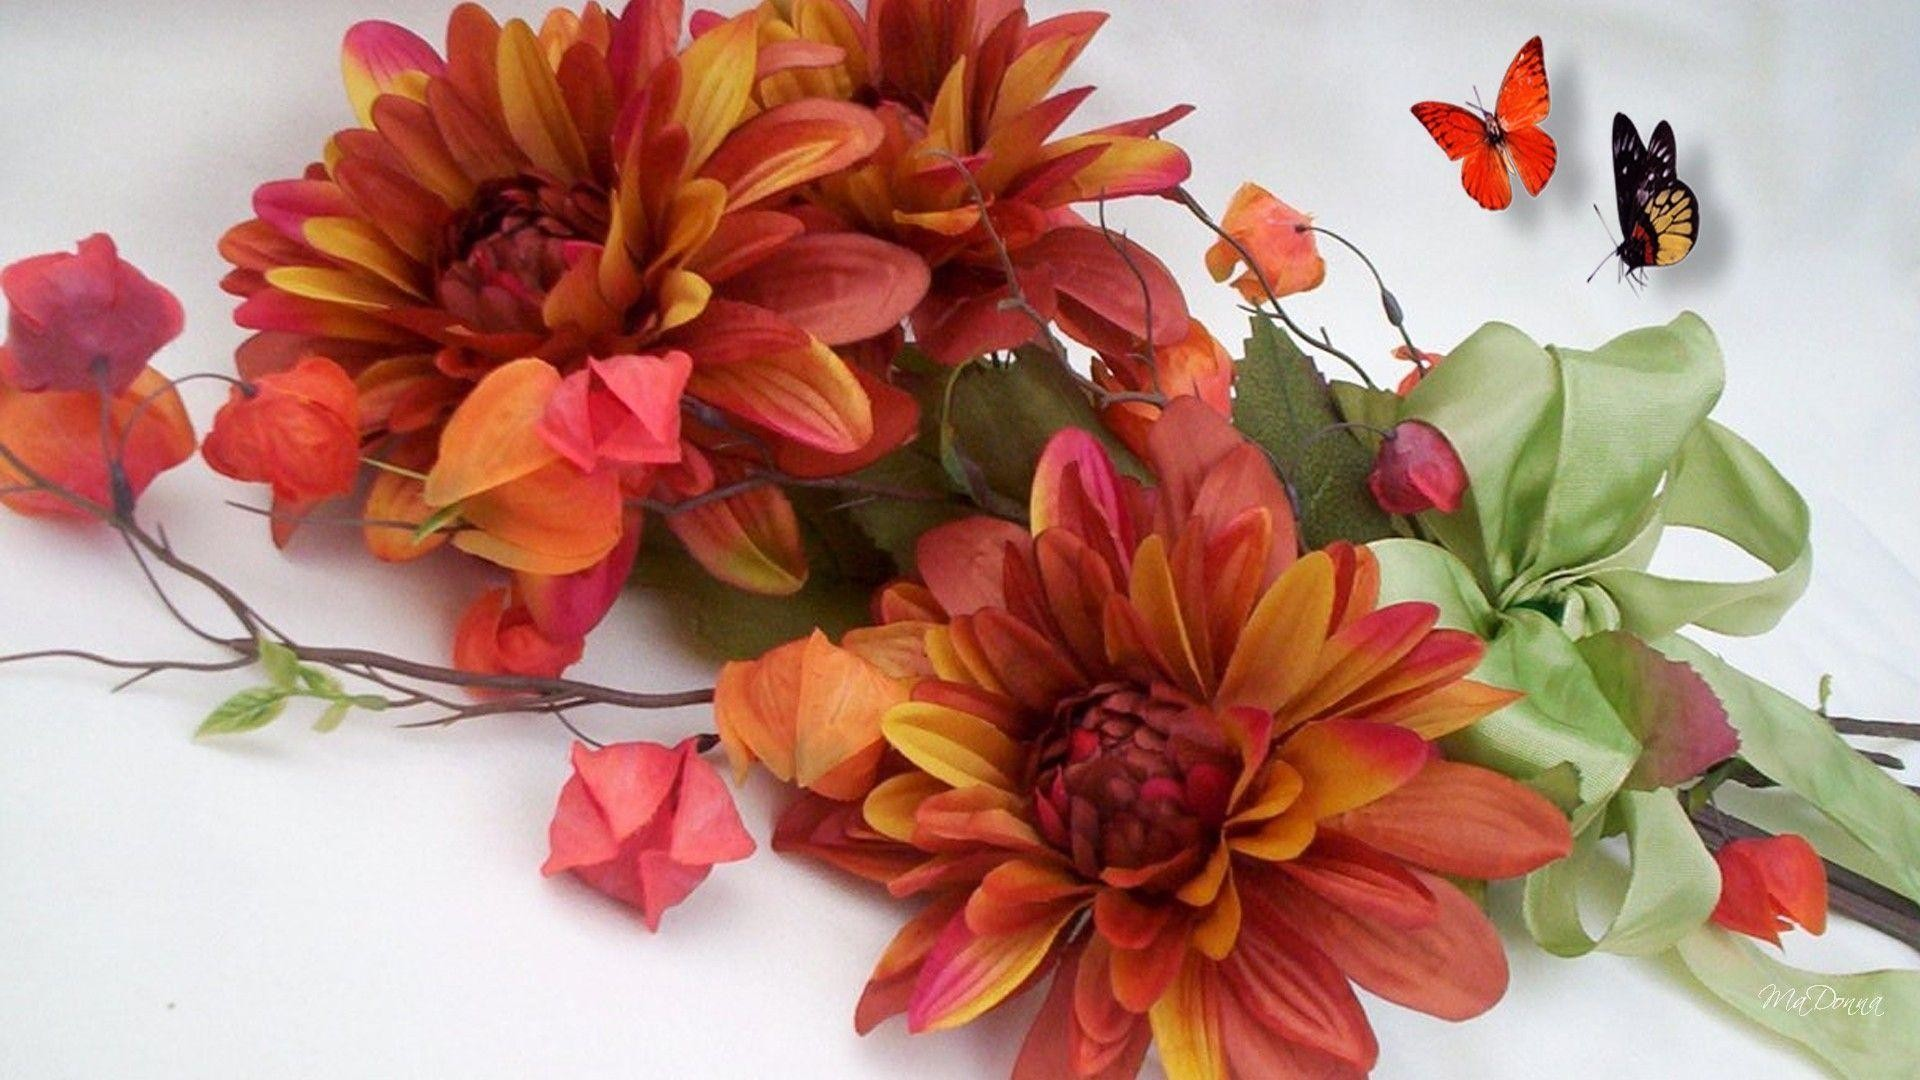 Fall flowers wallpaper for Popular fall flowers